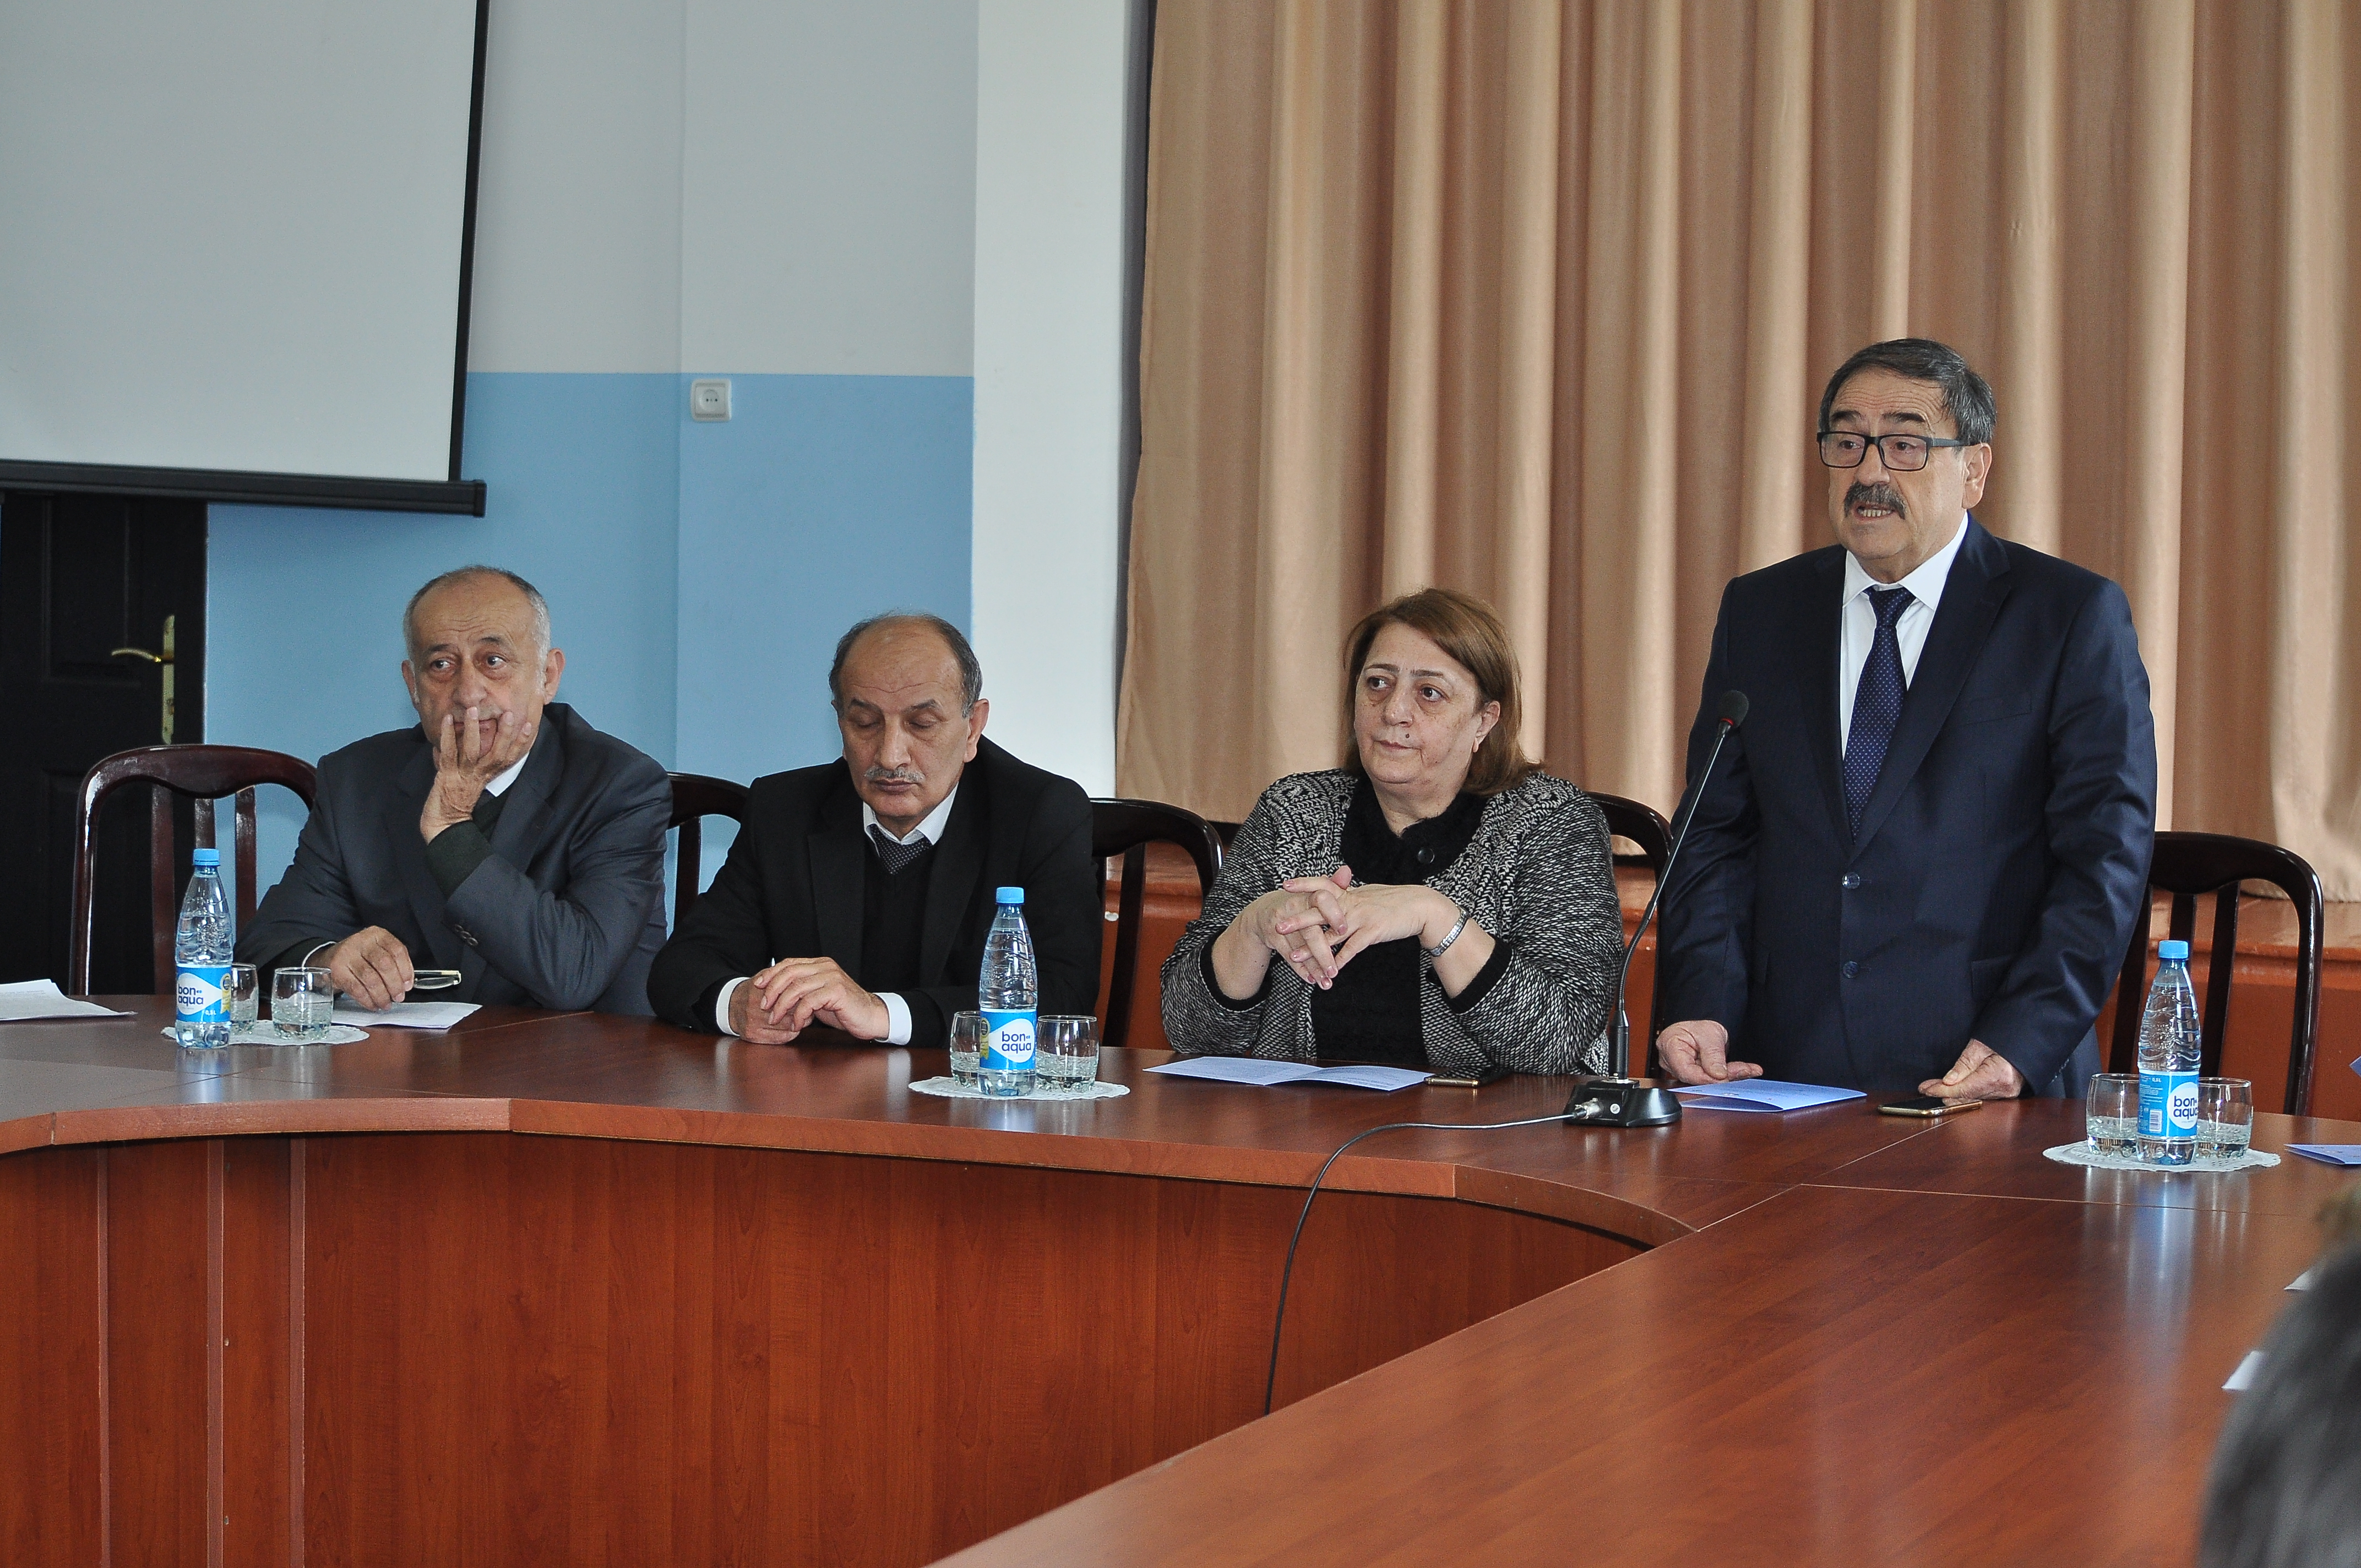 """The scientific-theoretical conference on """"History of honor and dignity of the Azerbaijan Democratic Republic"""" dedicated to the 100th anniversary of the establishment of the Azerbaijan Democratic Republic was held on 30.04.2018 jointly organized by Sheki Regional Executive Center of Azerbaijan National Academy of Sciences and Sheki City Executive Power"""